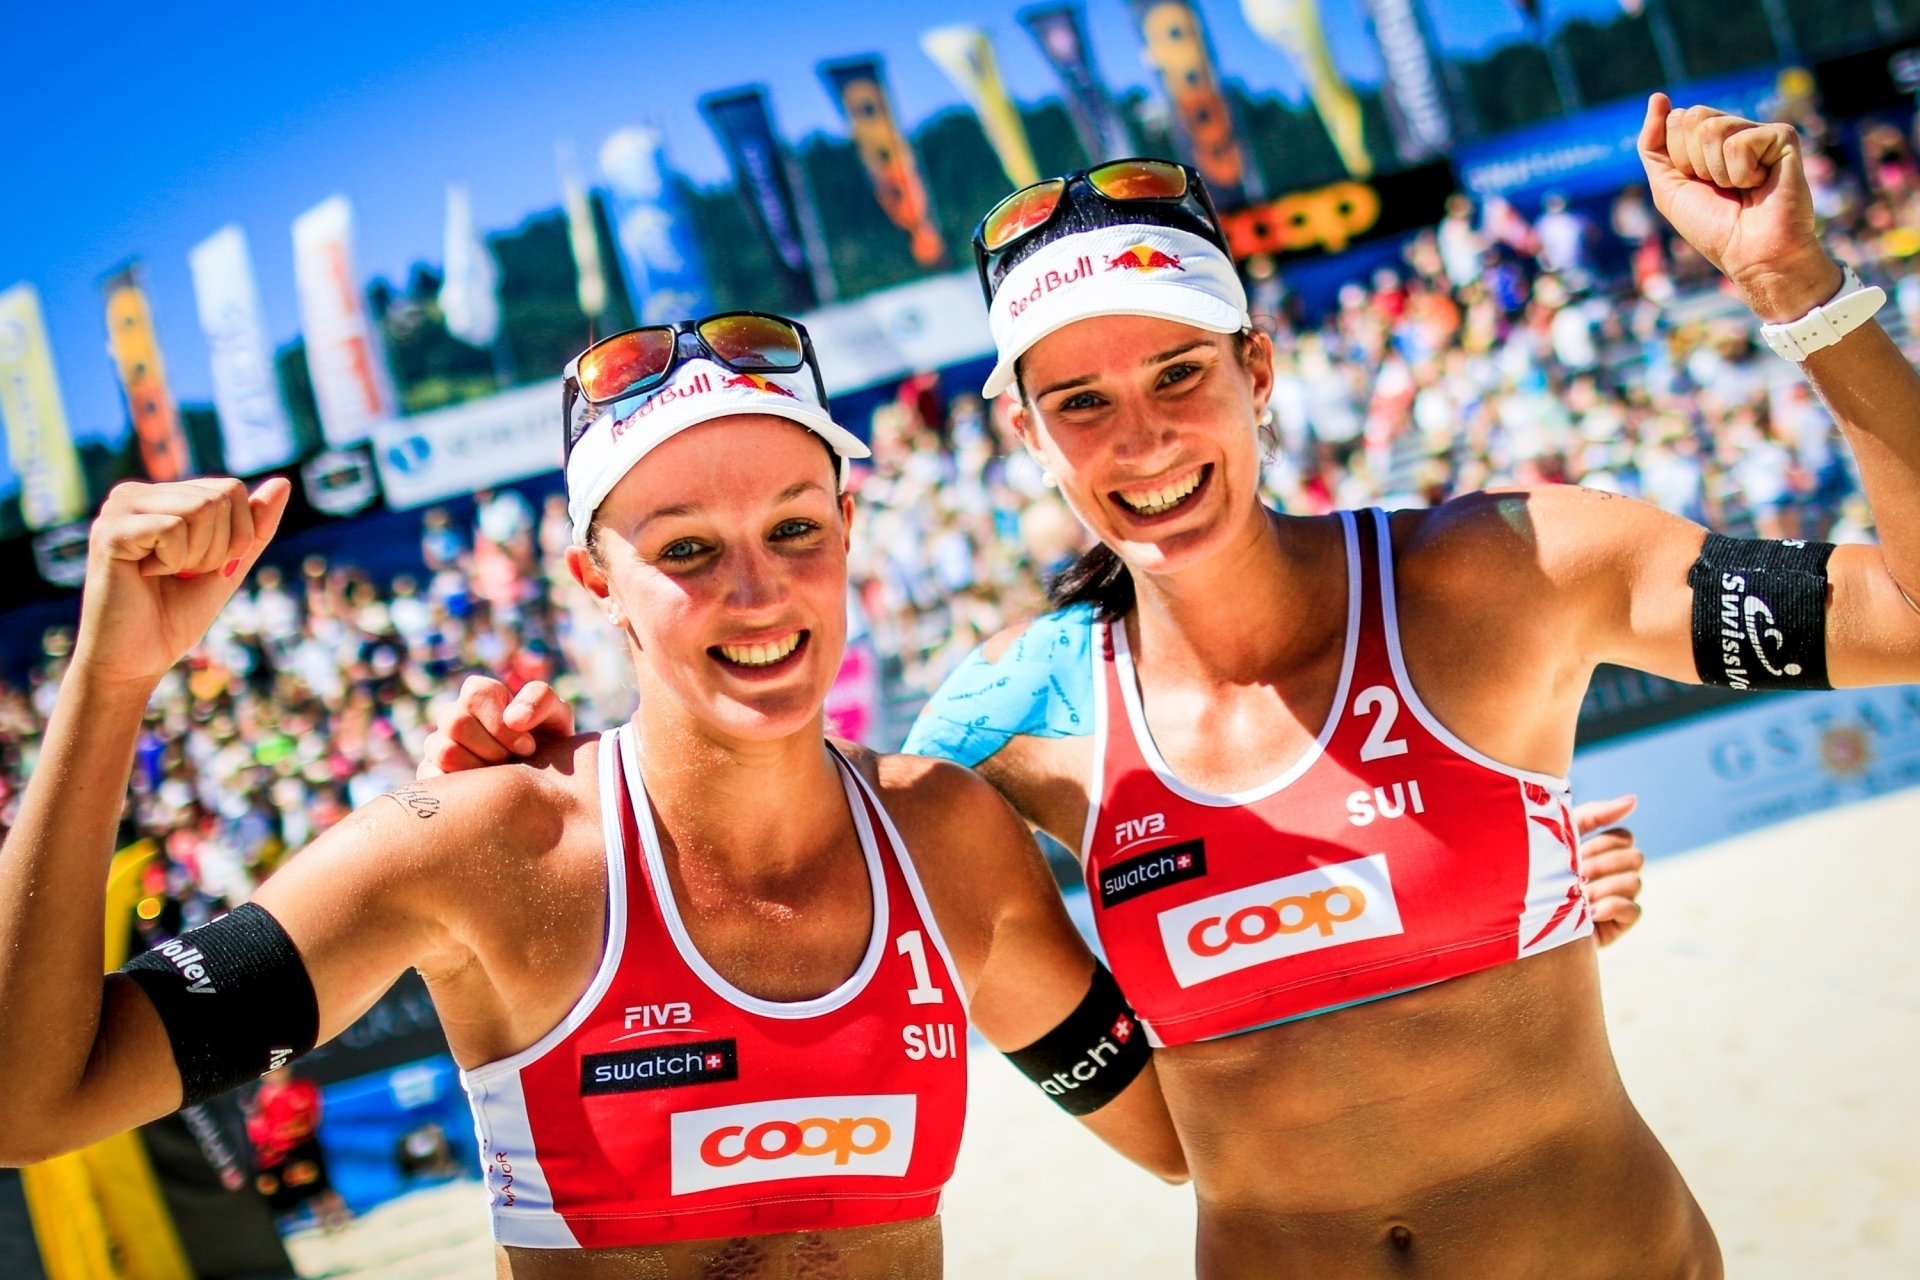 All eyes will be on Joana and Anouk as the Swiss team hope to end a run of 18 years without a gold in Gstaad